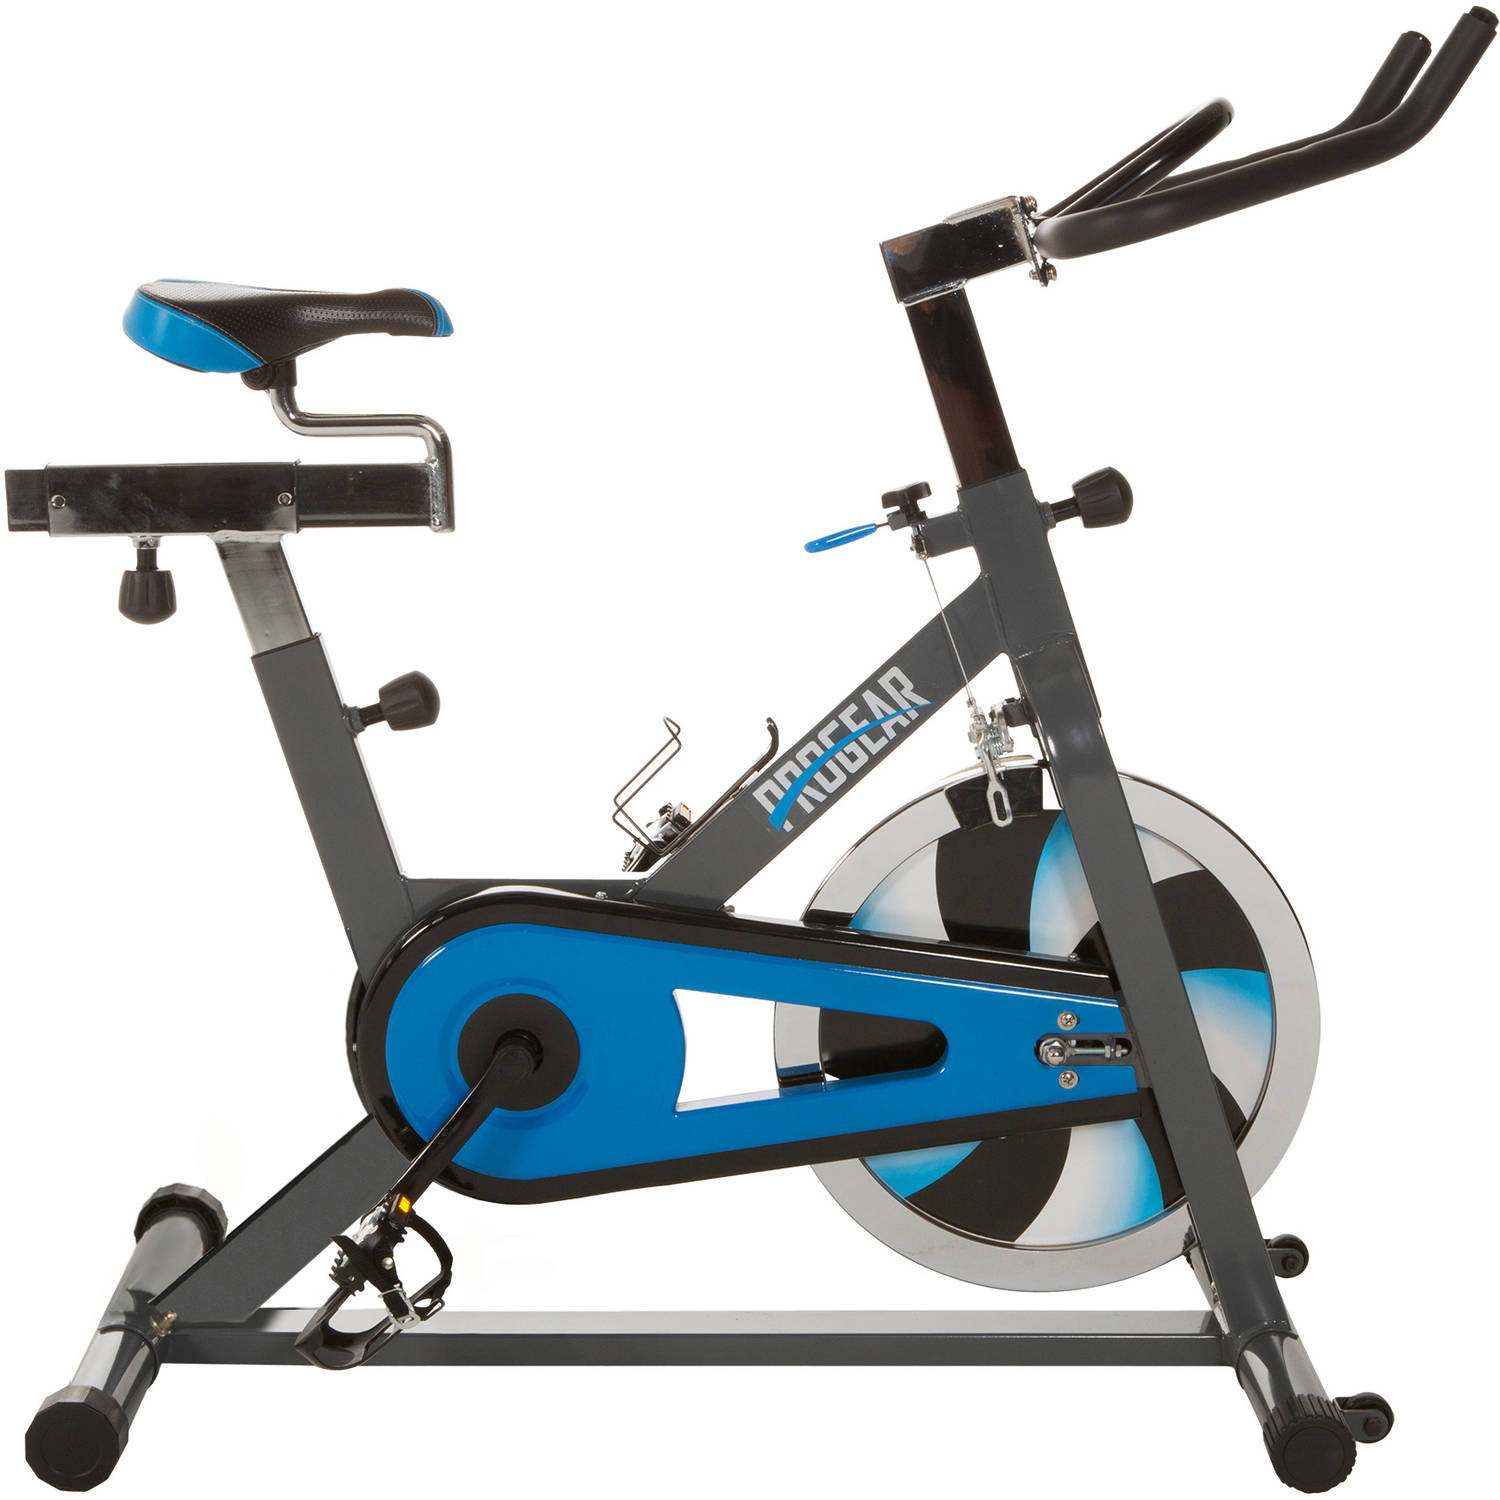 PROGEAR 120Xi Exercise Bike/Indoor Training Cycle